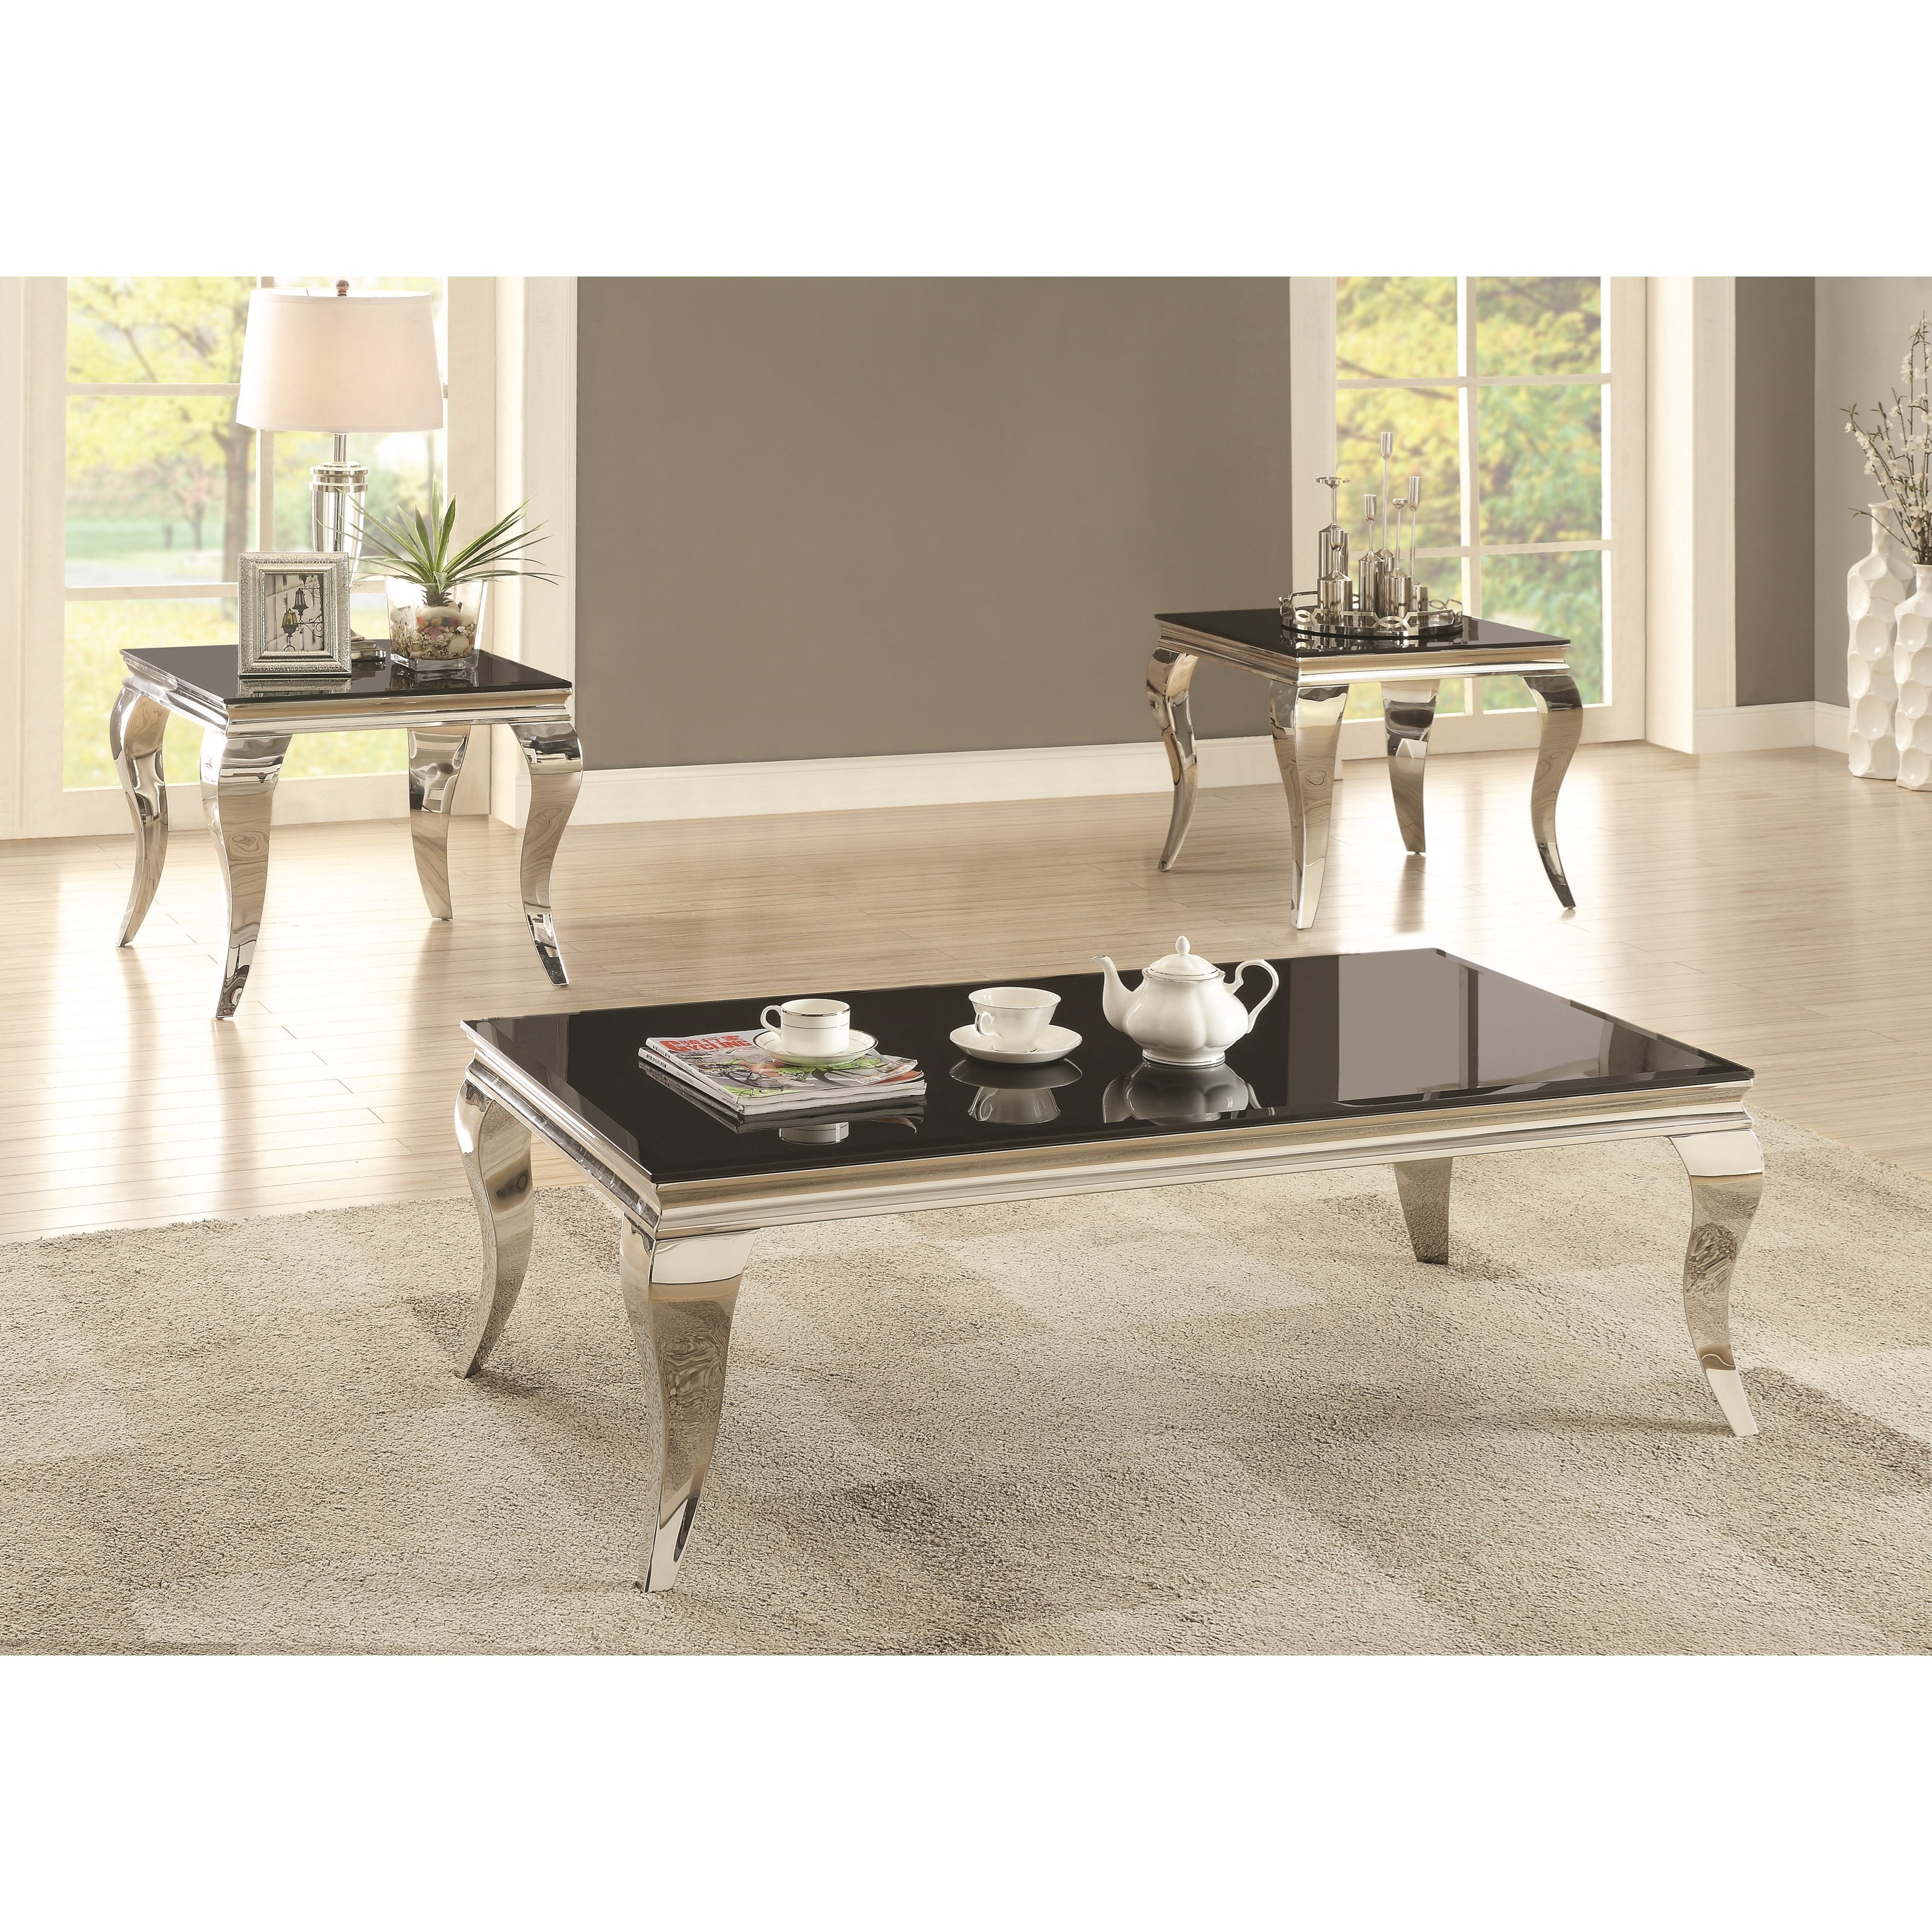 Coaster Carone Contemporary Glam Dining Room Set With: Coaster 705010 705018 Glam Coffee Table With Queen Anne